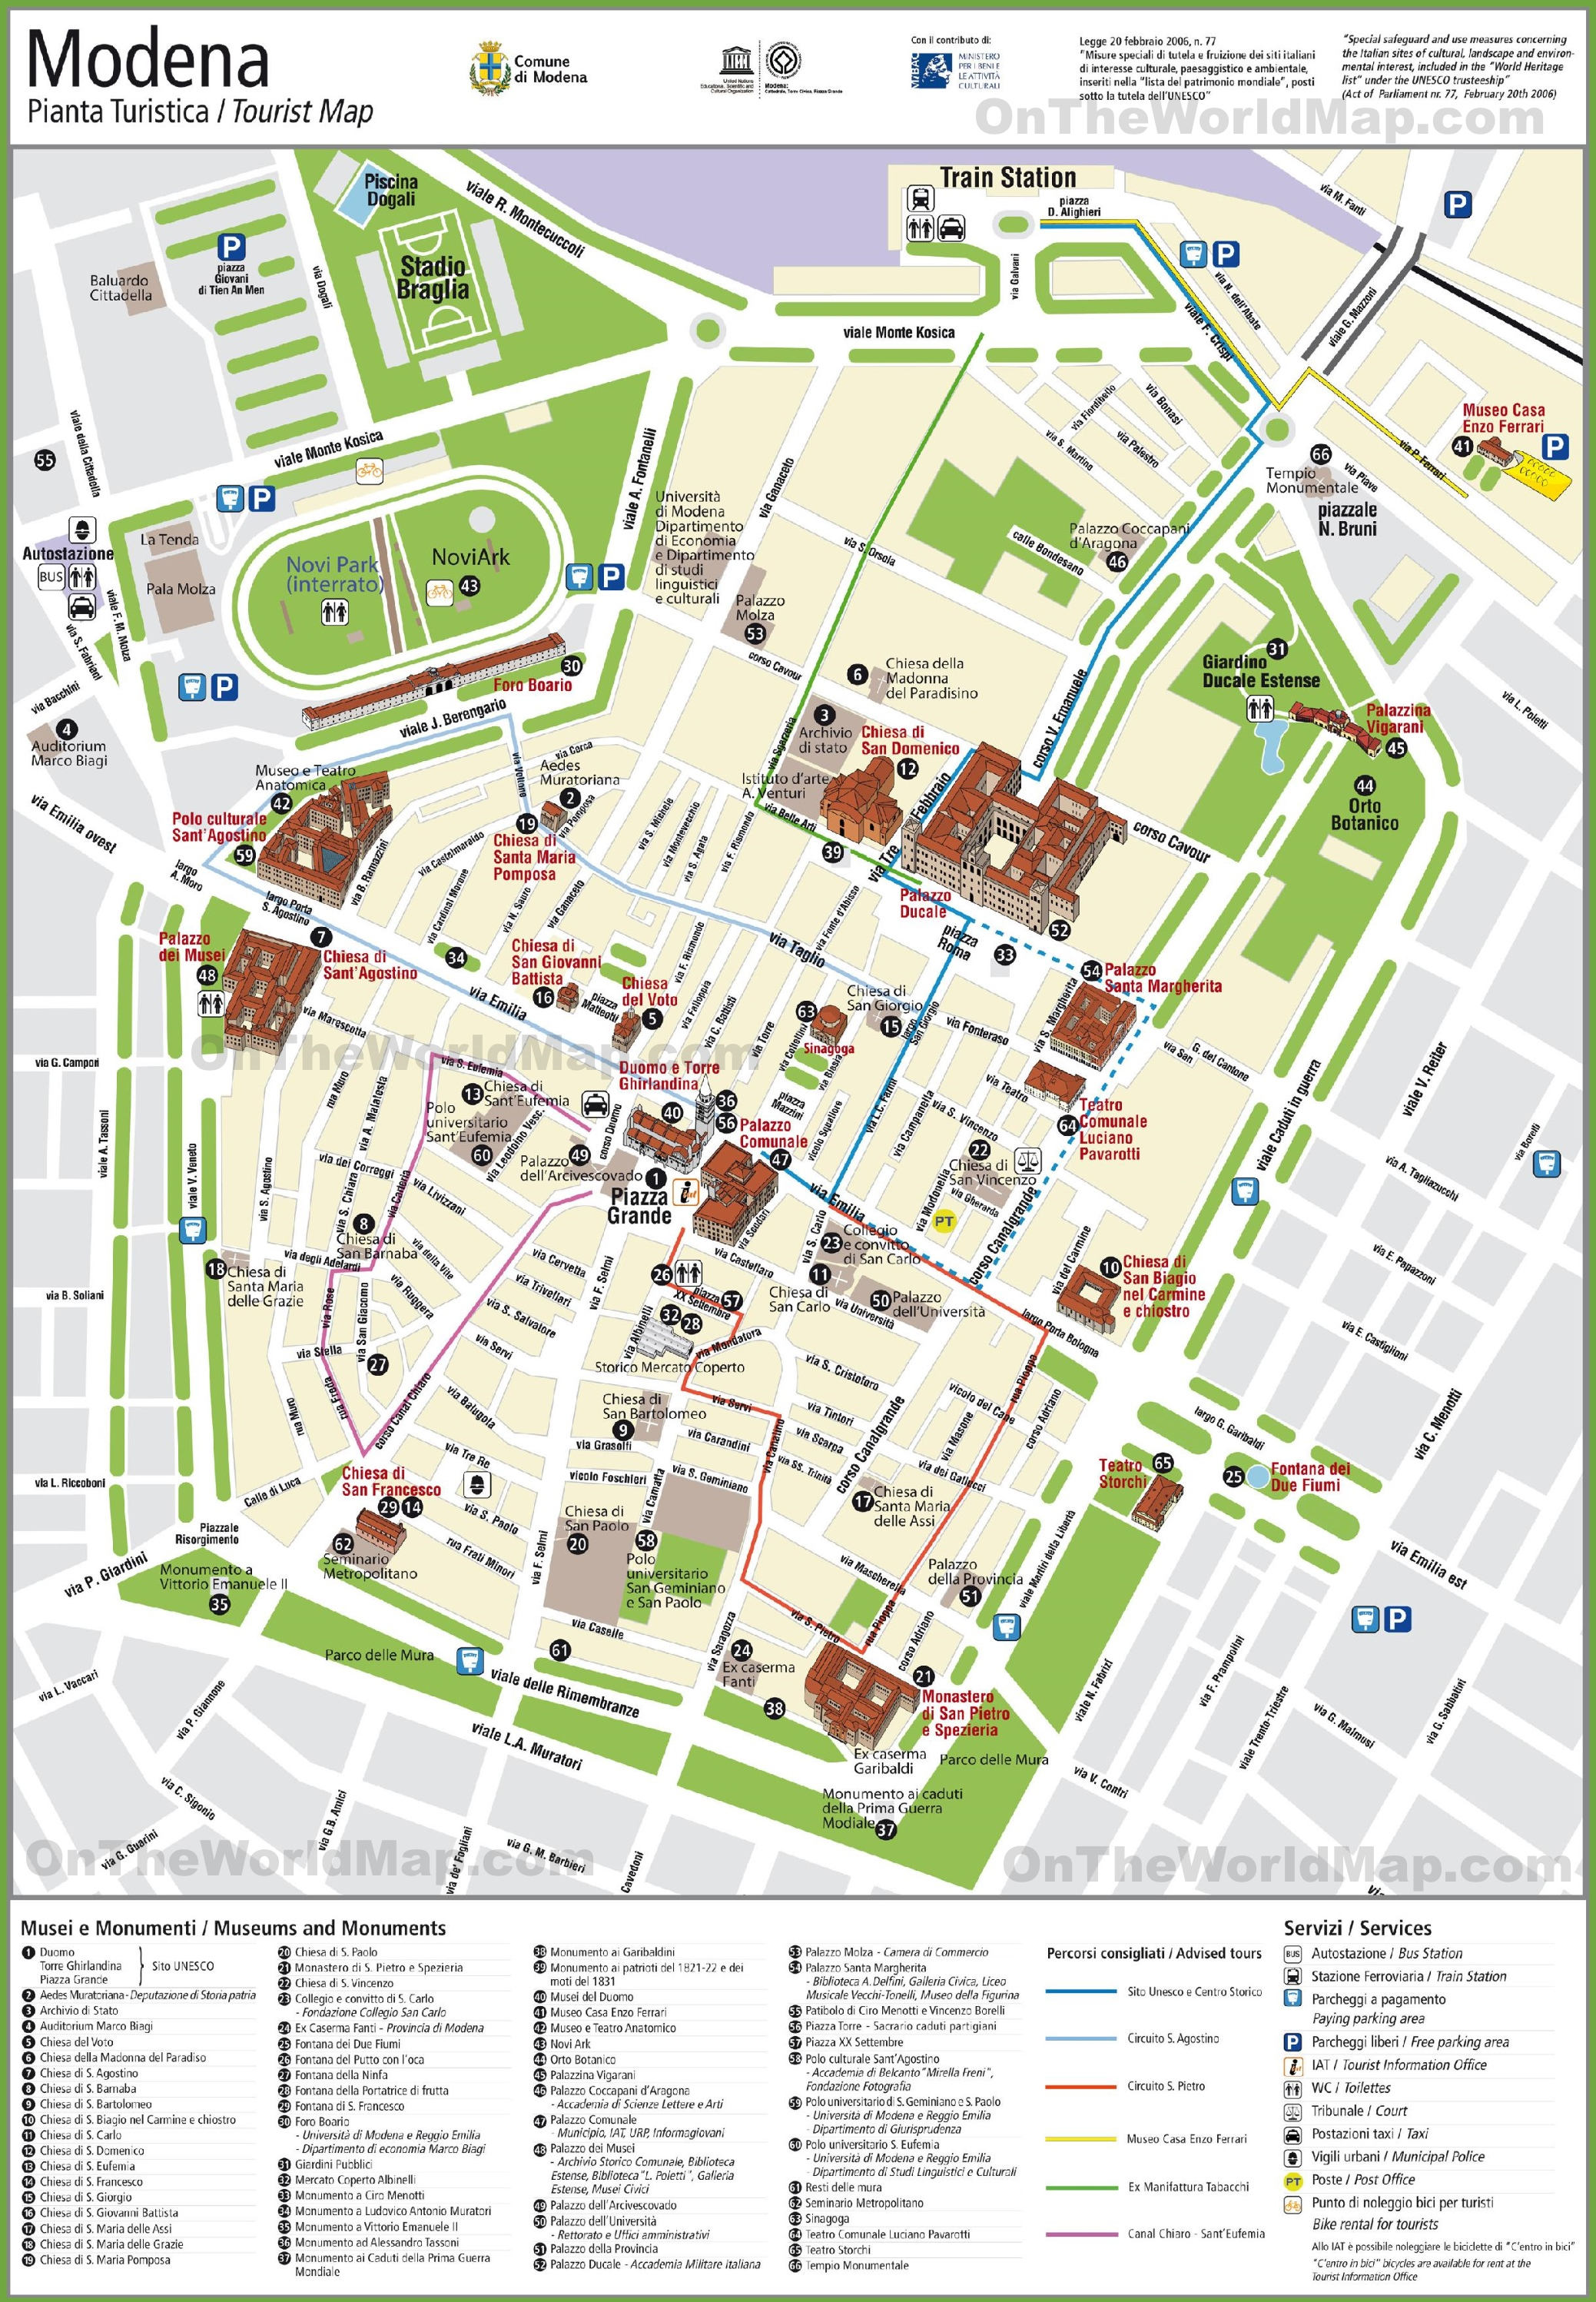 Modena tourist attractions map